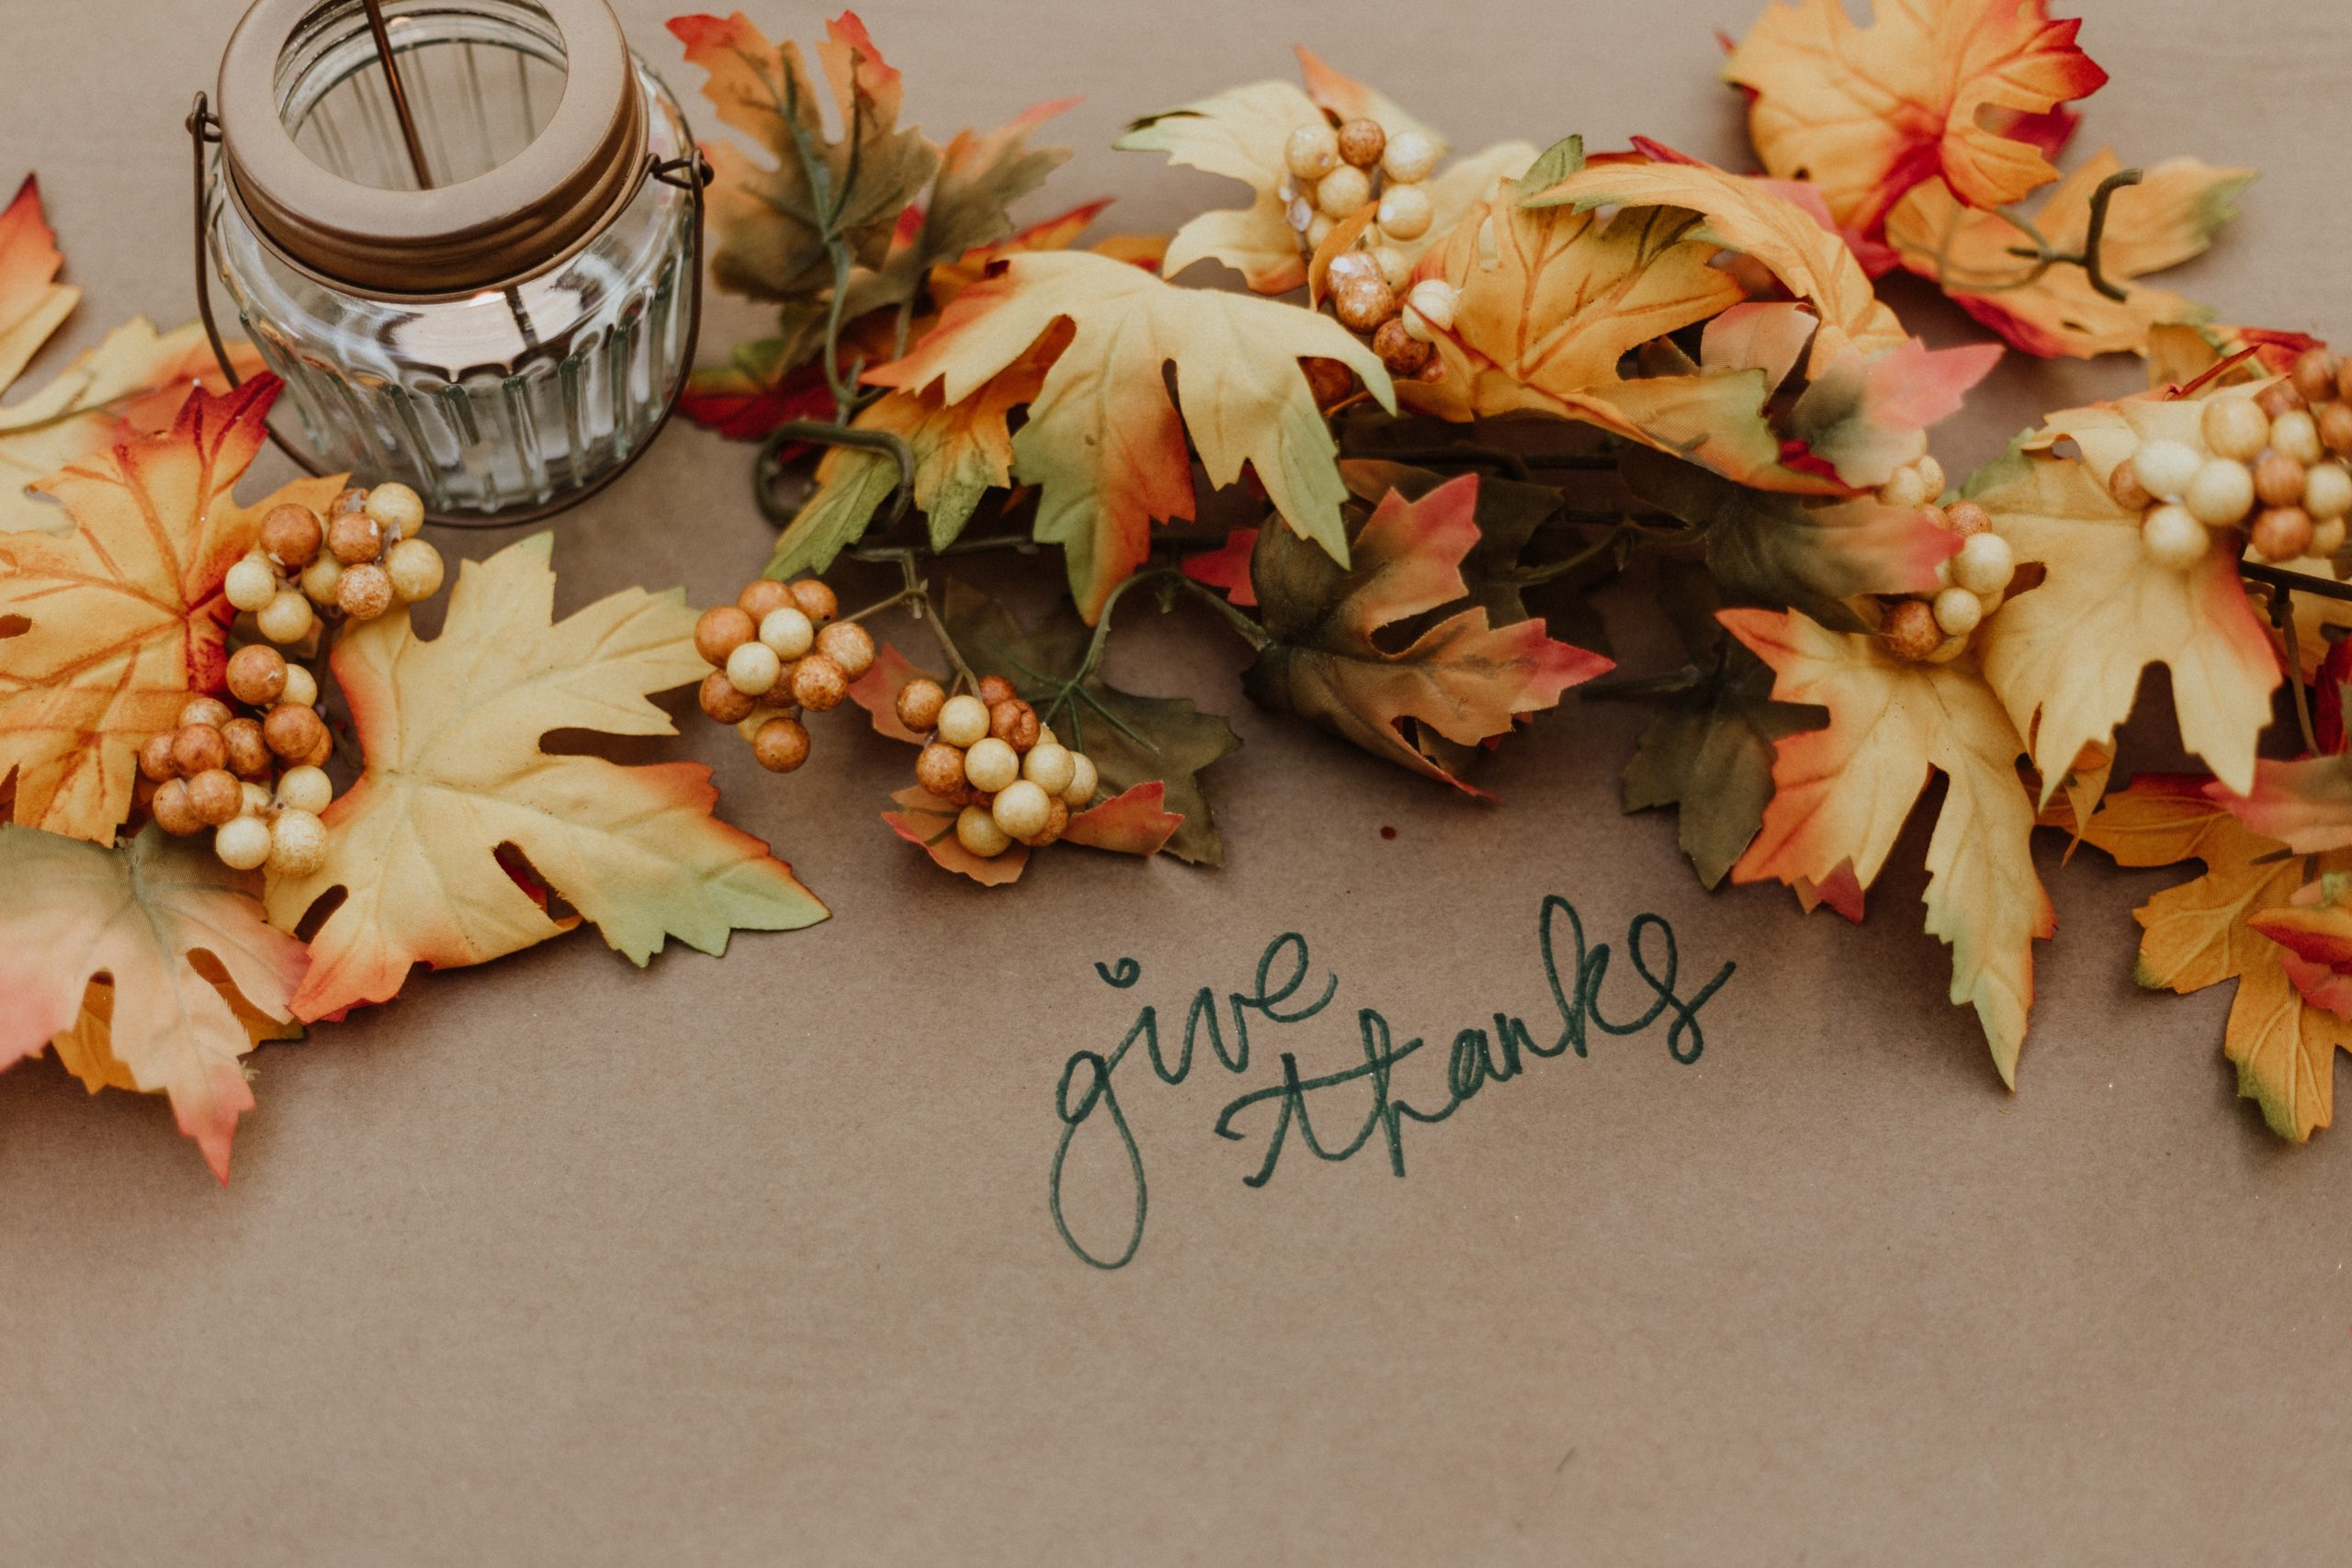 """pile of leaves and a candle laid on brown craft paper with the phrase """"give thanks"""" written in marker on the paper. There are many misconceptions around mental health during the holidays. Mental health is important year round, but some may encounter stressors that trigger the holidays blues. Take care of your holiday mental health by engaging in activities with family, and much more."""